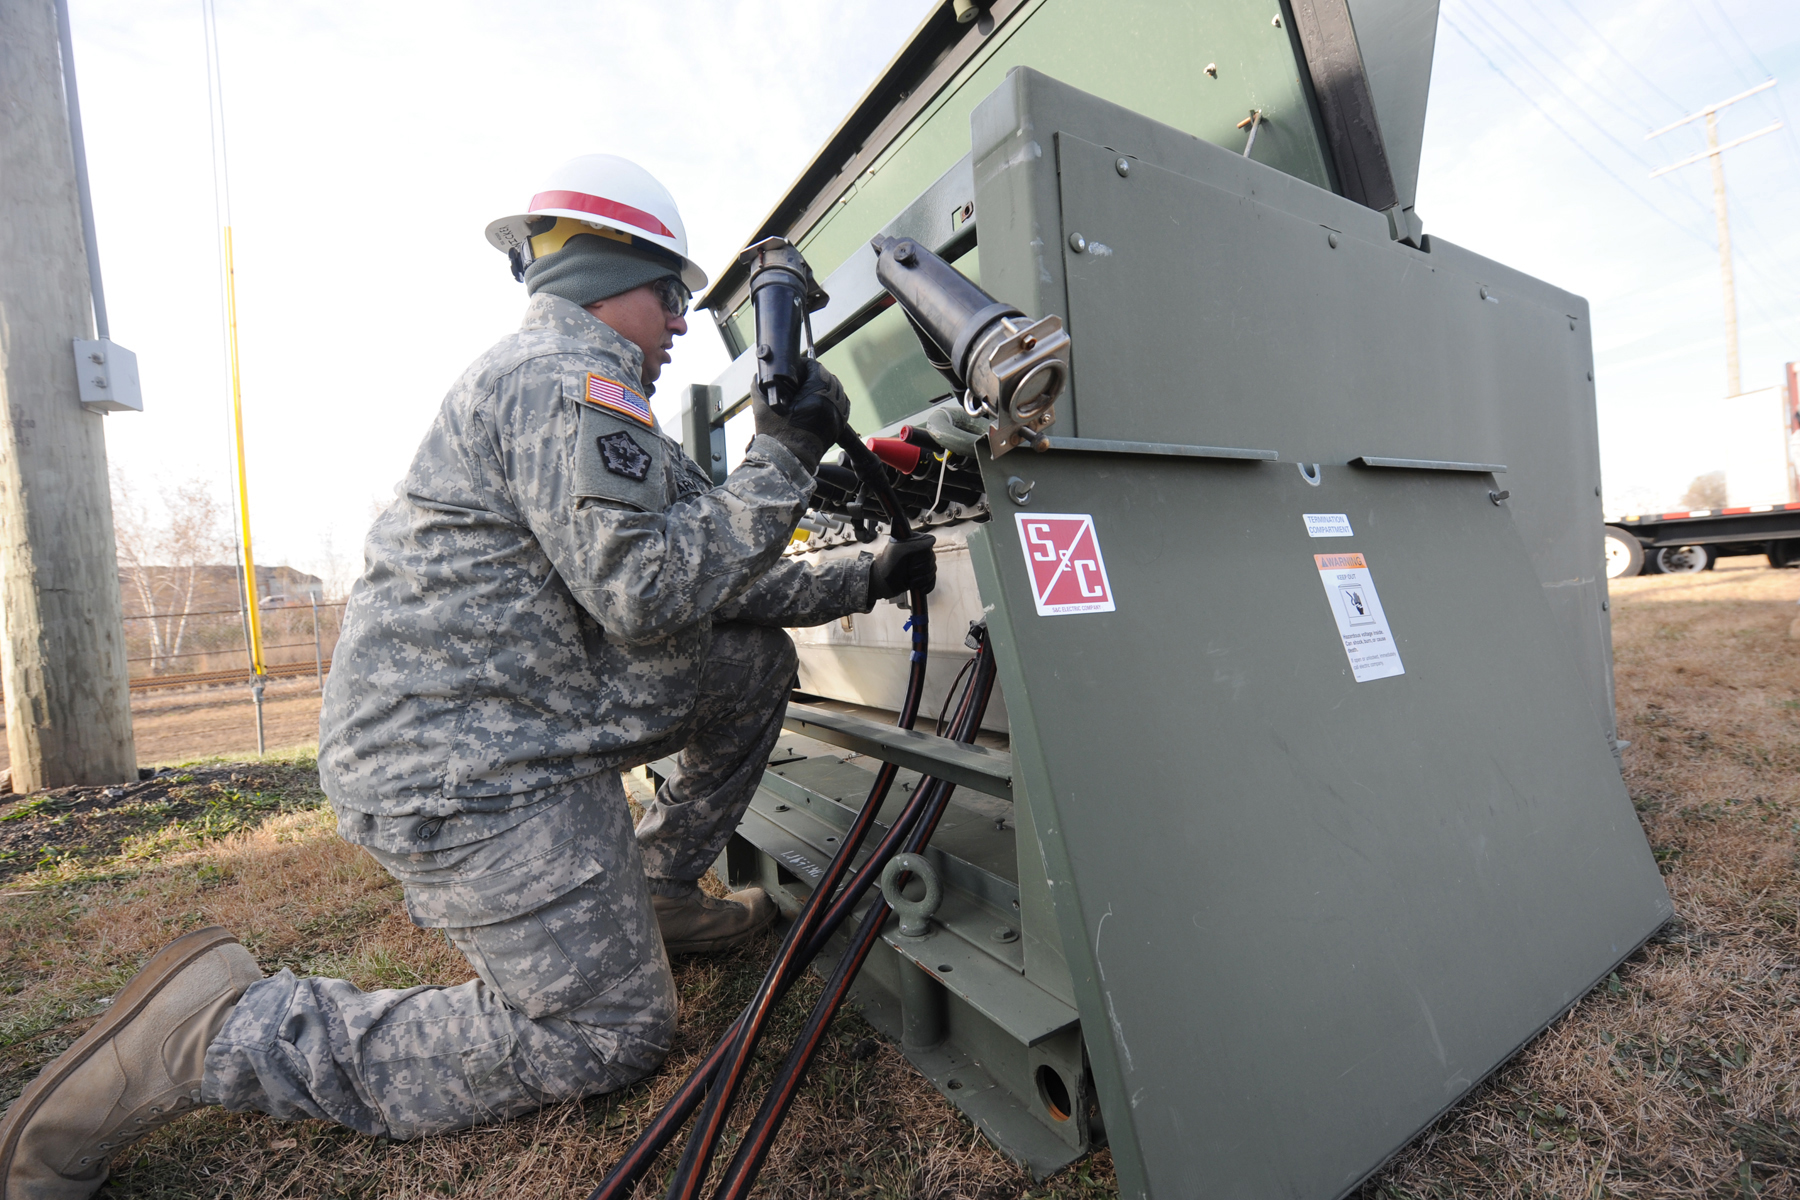 Troop Support helps power FEMA with new generators contract